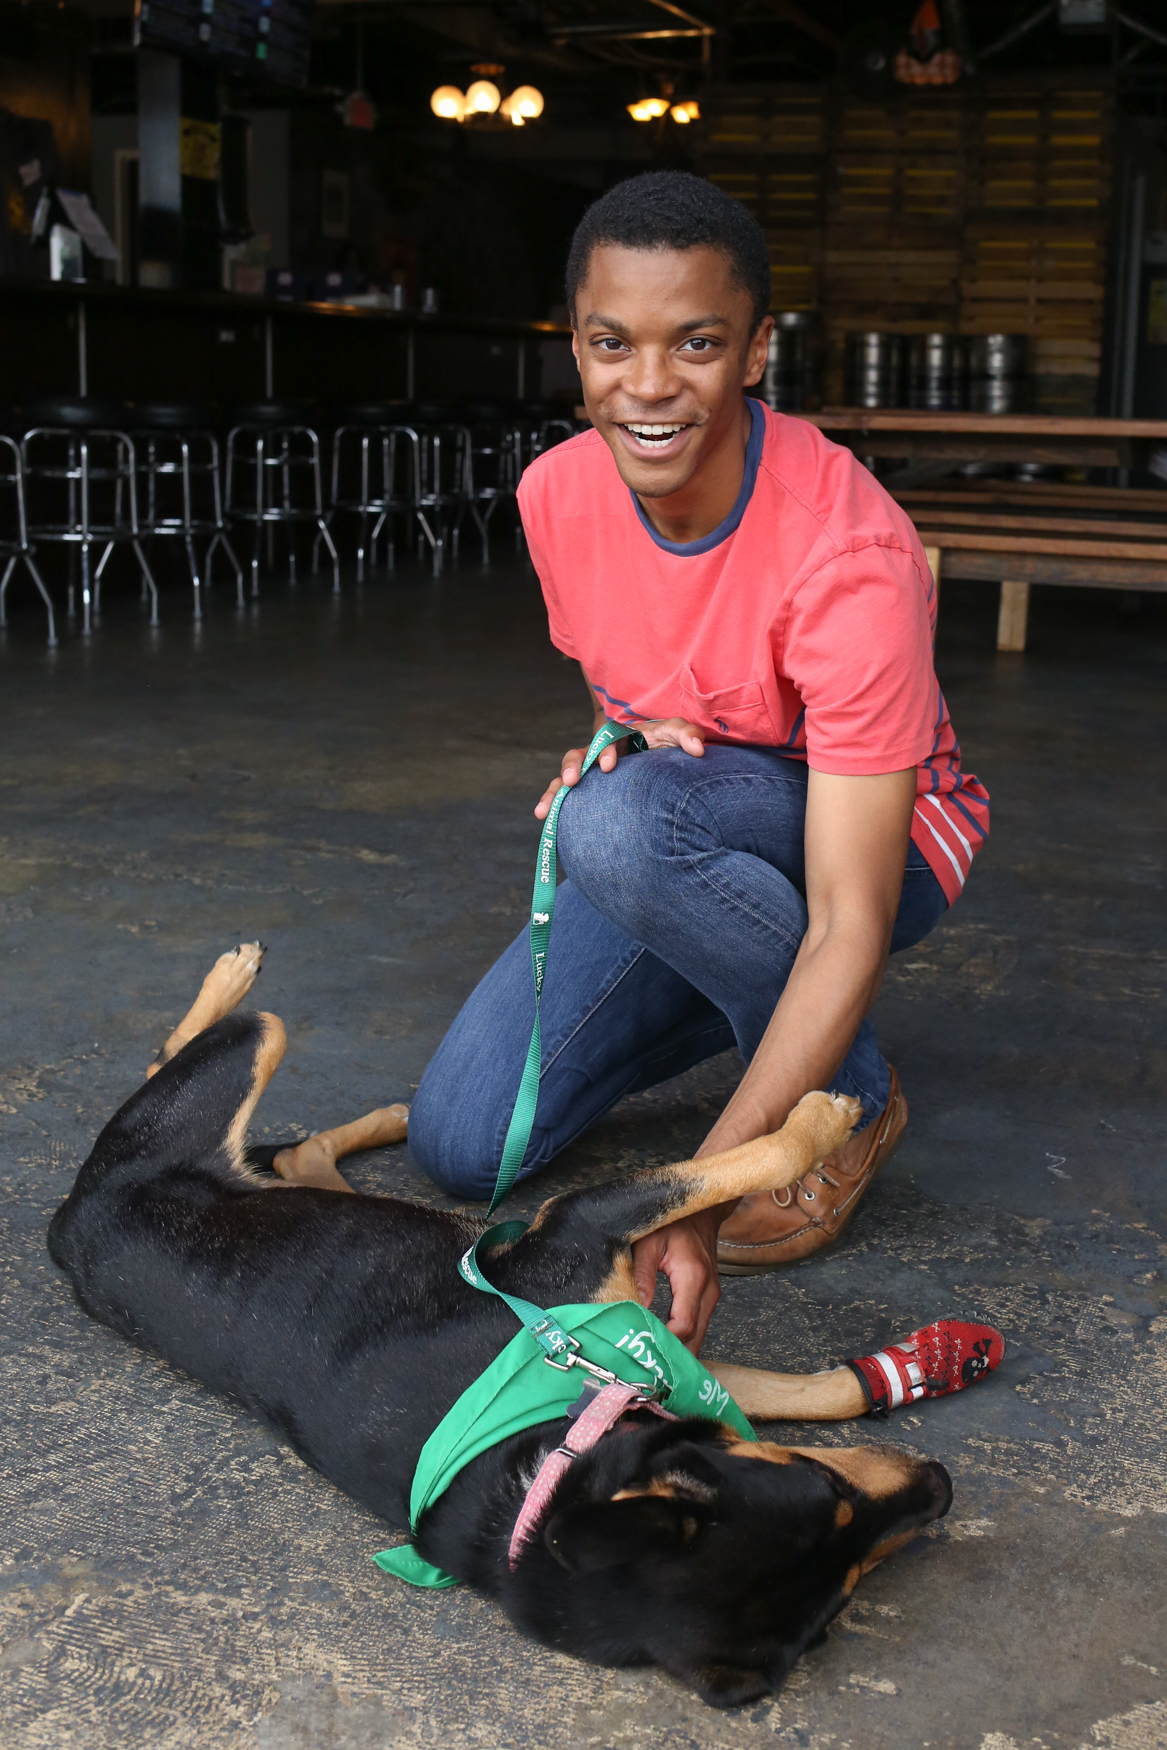 Meet Kam and Chris, a 2-year-old Shepherd mix and a 25-year-old human respectively. Photo location: Midlands Beer Garden (Image: Amanda Andrade-Rhoades/ DC Refined)